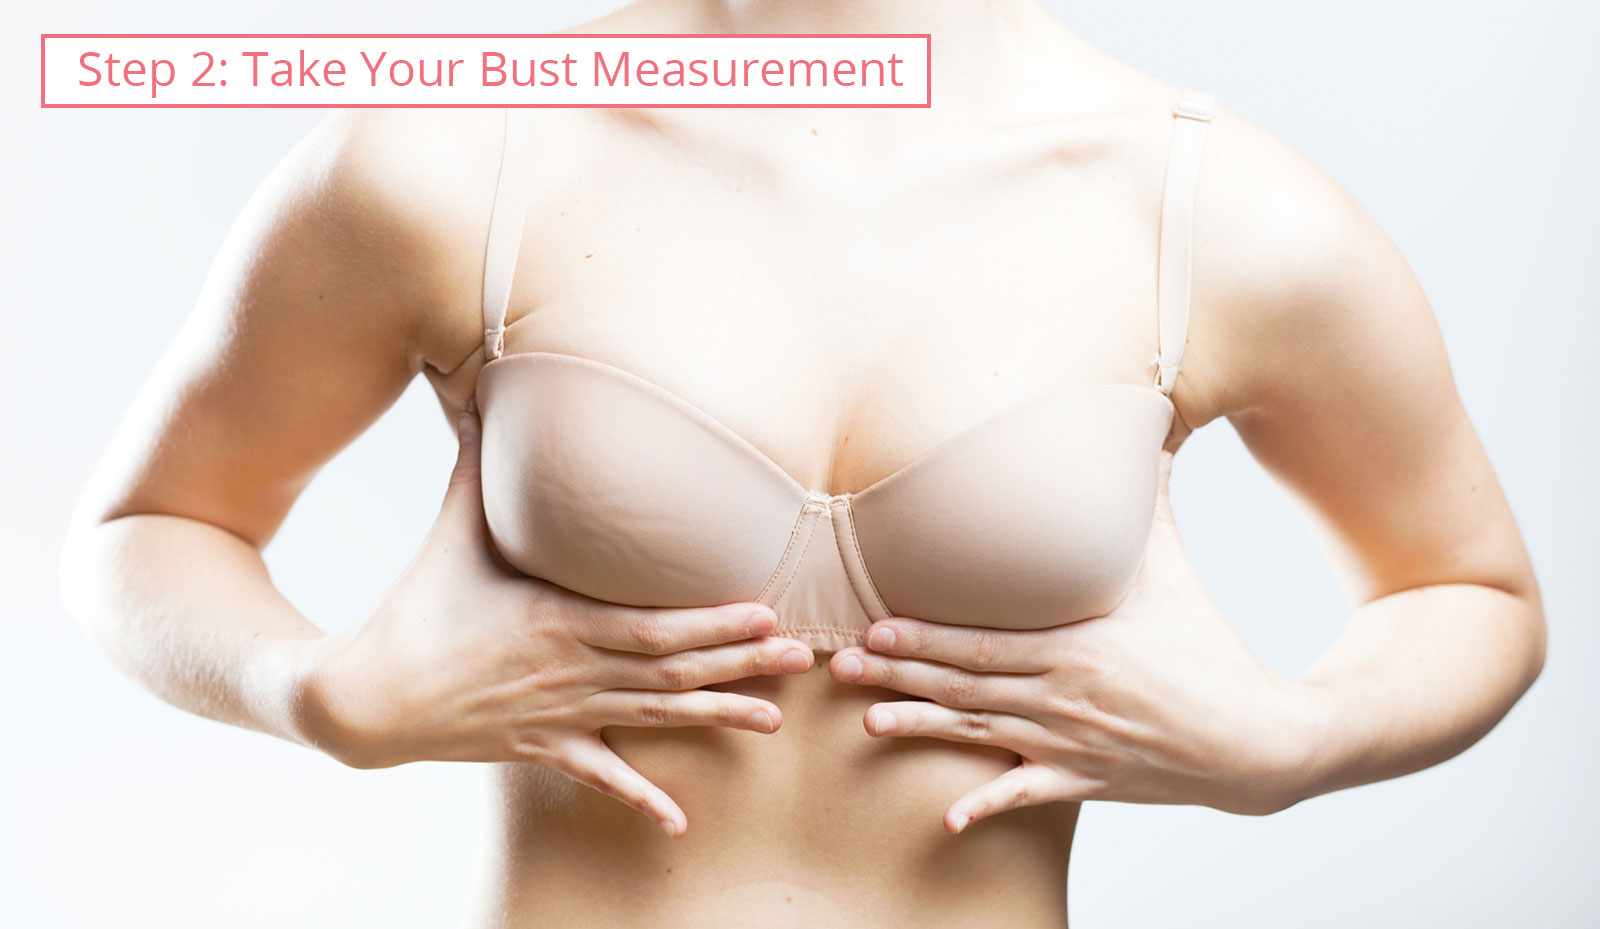 Bra size chart: bust measurement